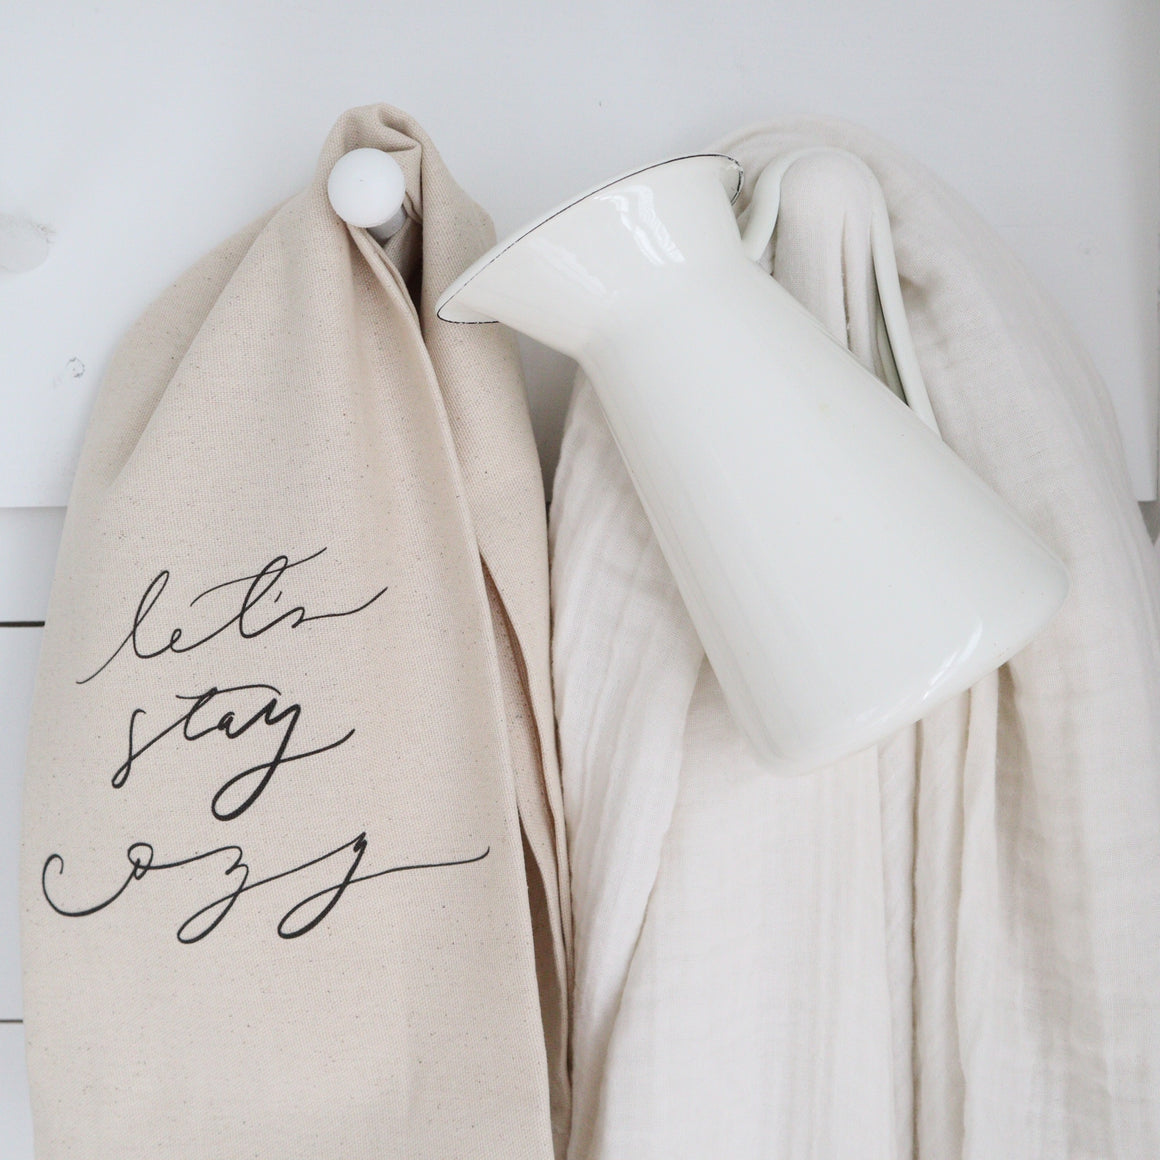 Let's Stay Cozy Tea Towel